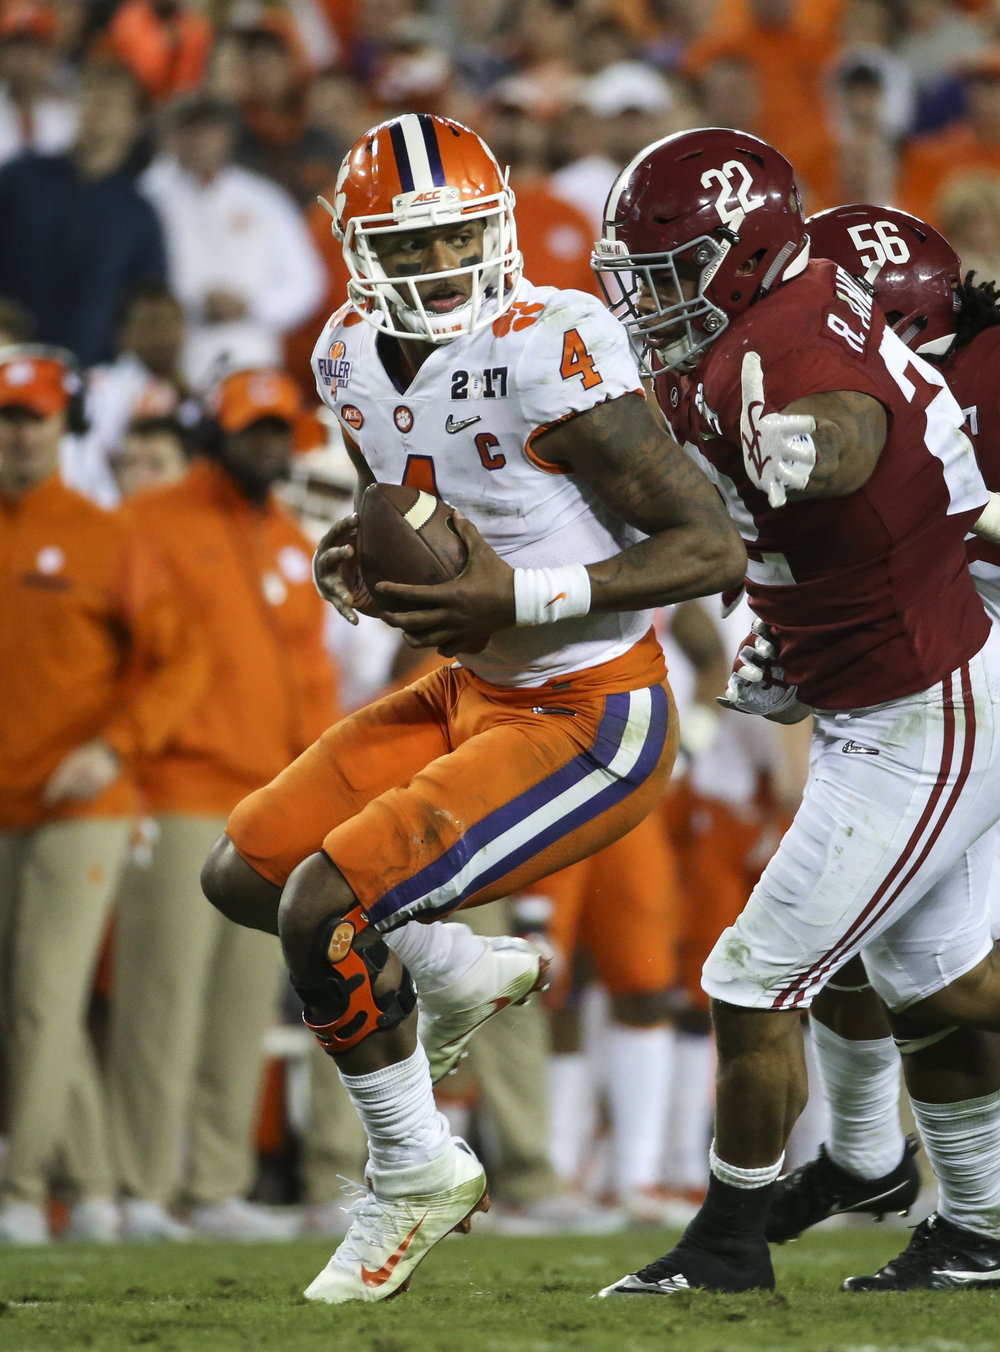 Clemson Tigers quarterback Deshaun Watson (4) escapes  Alabama Crimson Tide linebacker Ryan Anderson (22) and linebacker Tim Williams (56) during the fourth quarter of the College Football Playoff National Championship on Monday January 9, 2017 at Raymond James Stadium, in Tampa, Fla. Clemson Tigers defeated the Alabama Crimson Tide 35 to 31.